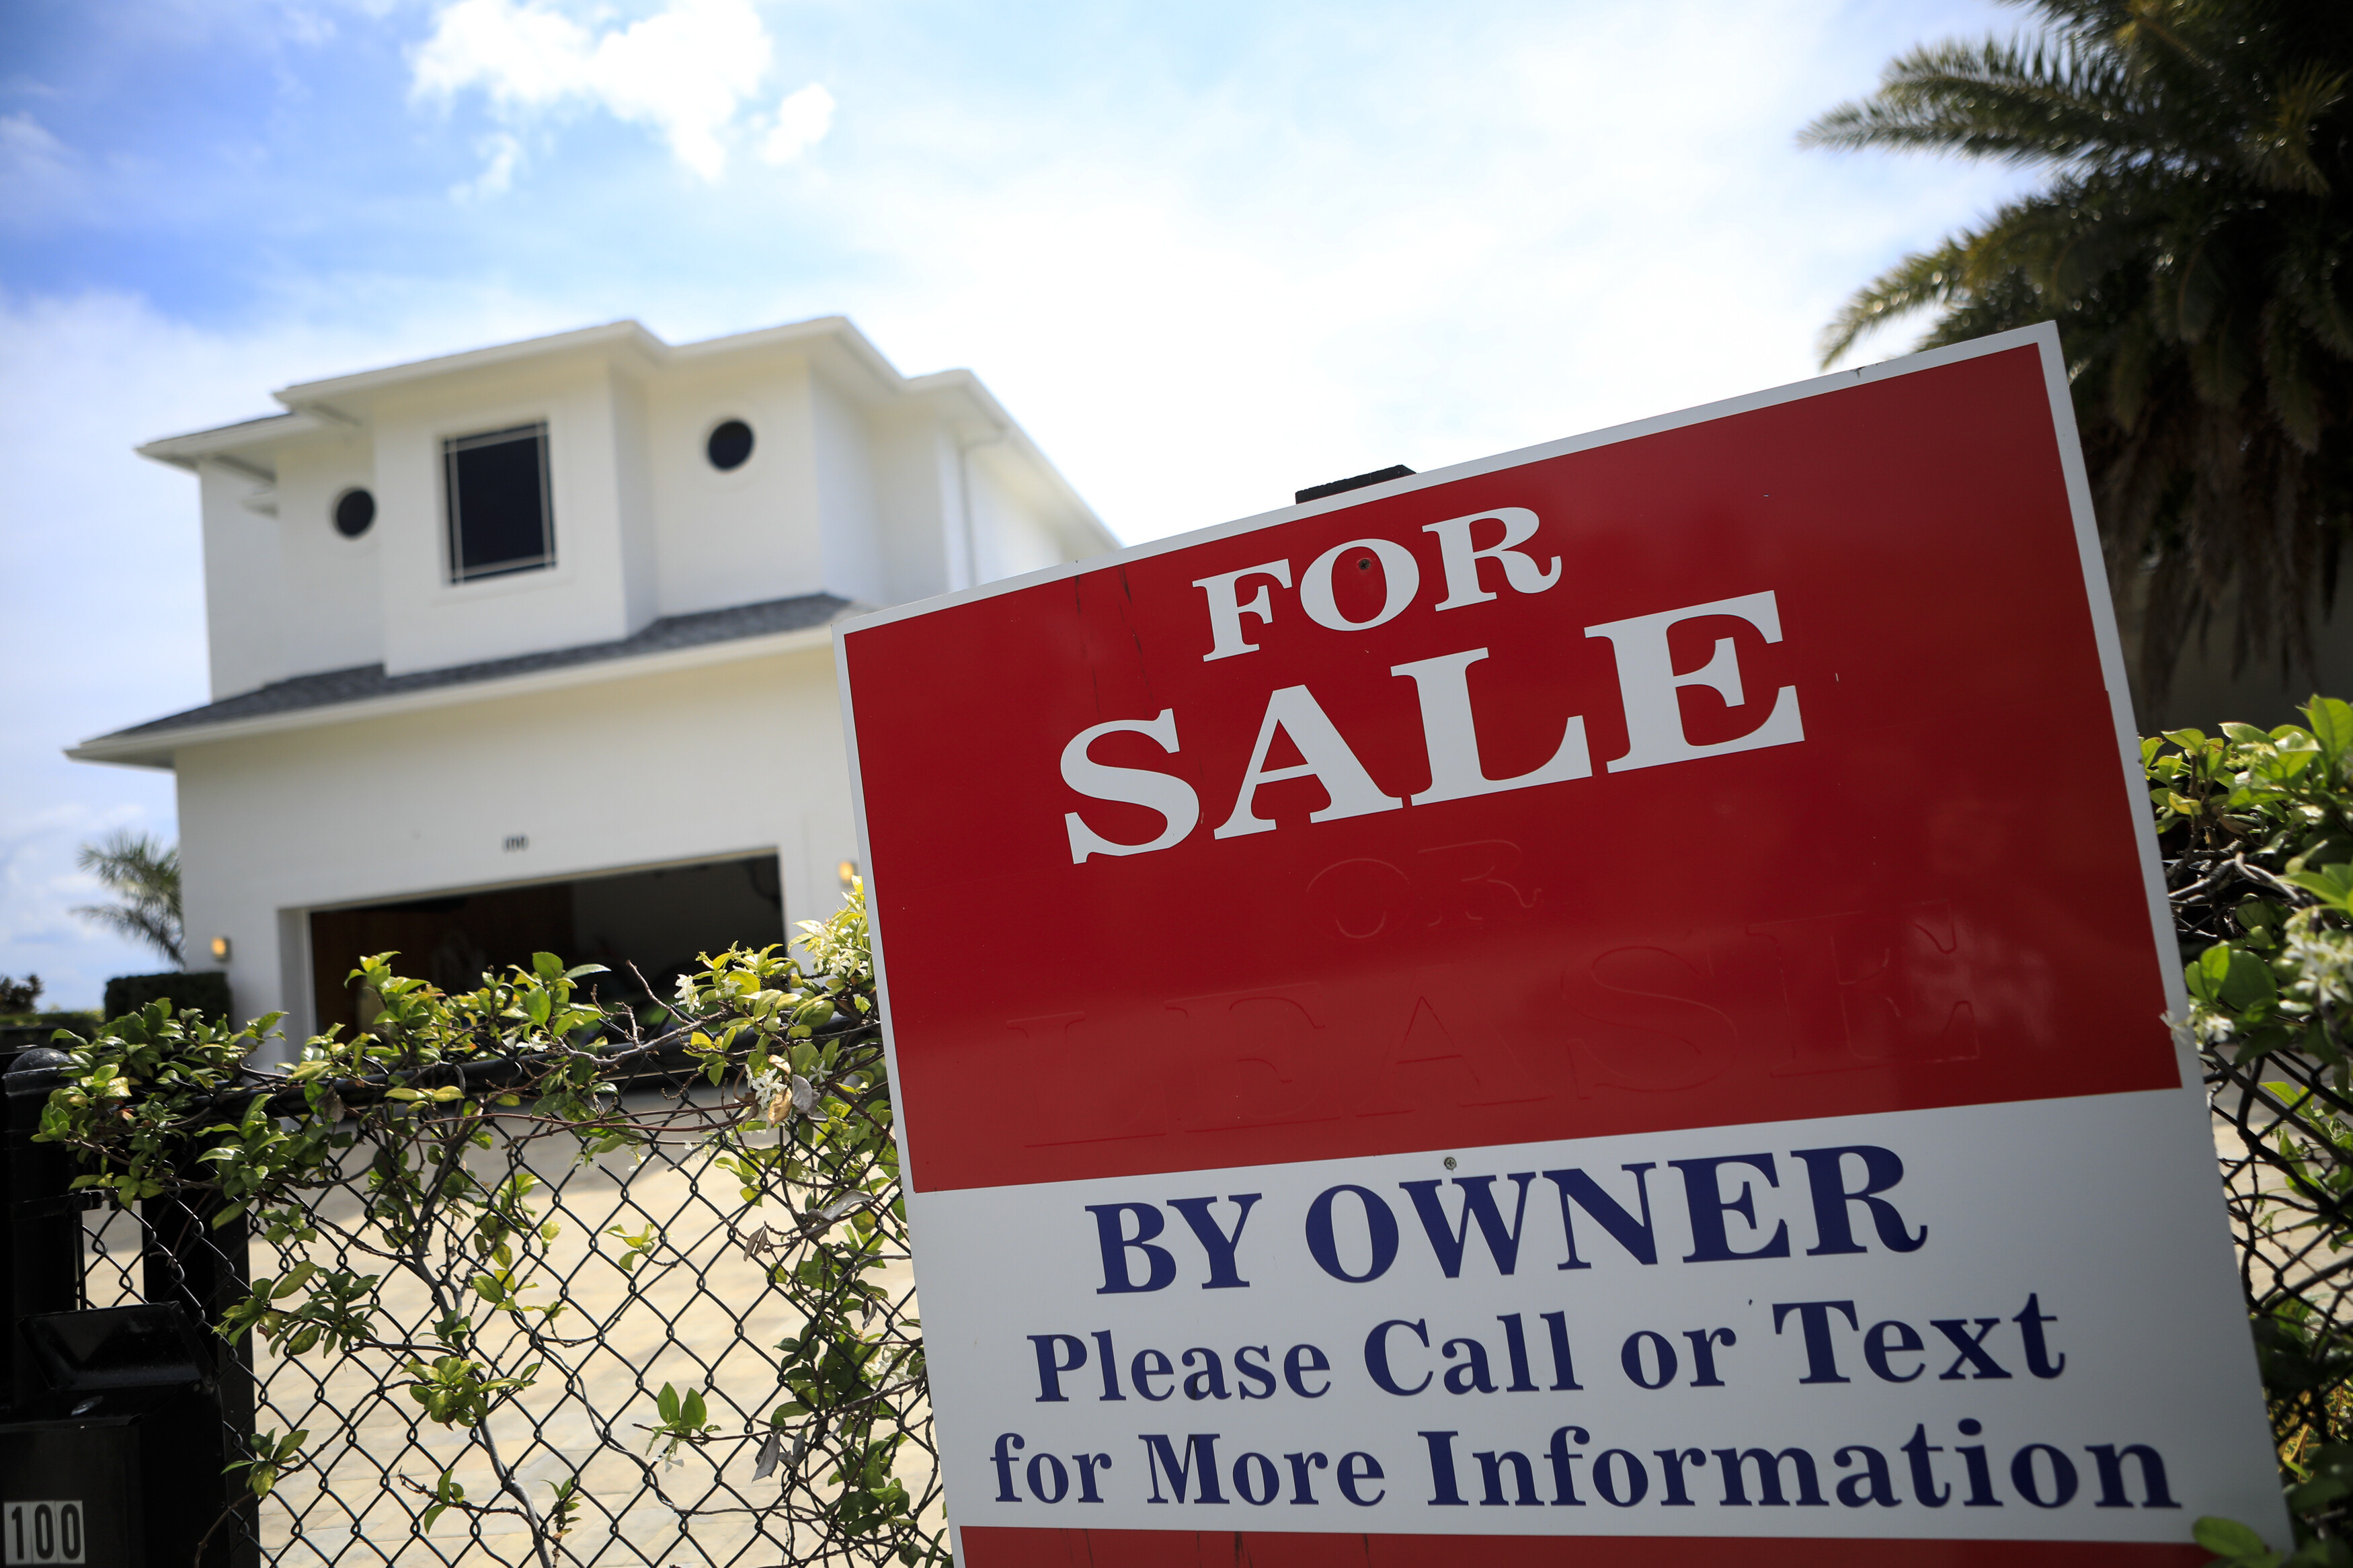 Buying a home or refinancing? A 30-year mortgage may not be your best option